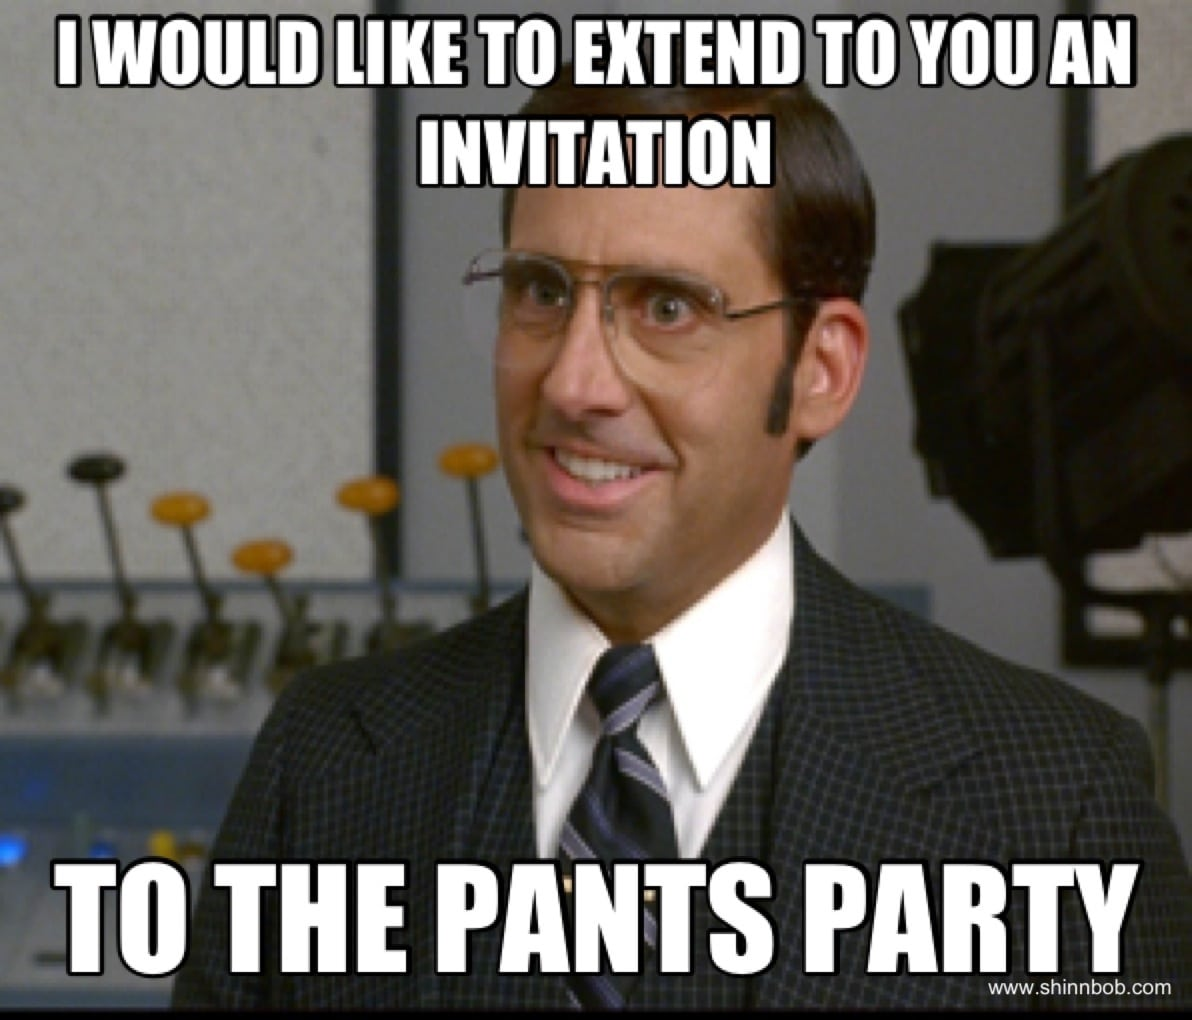 Invitation To The Pants Party